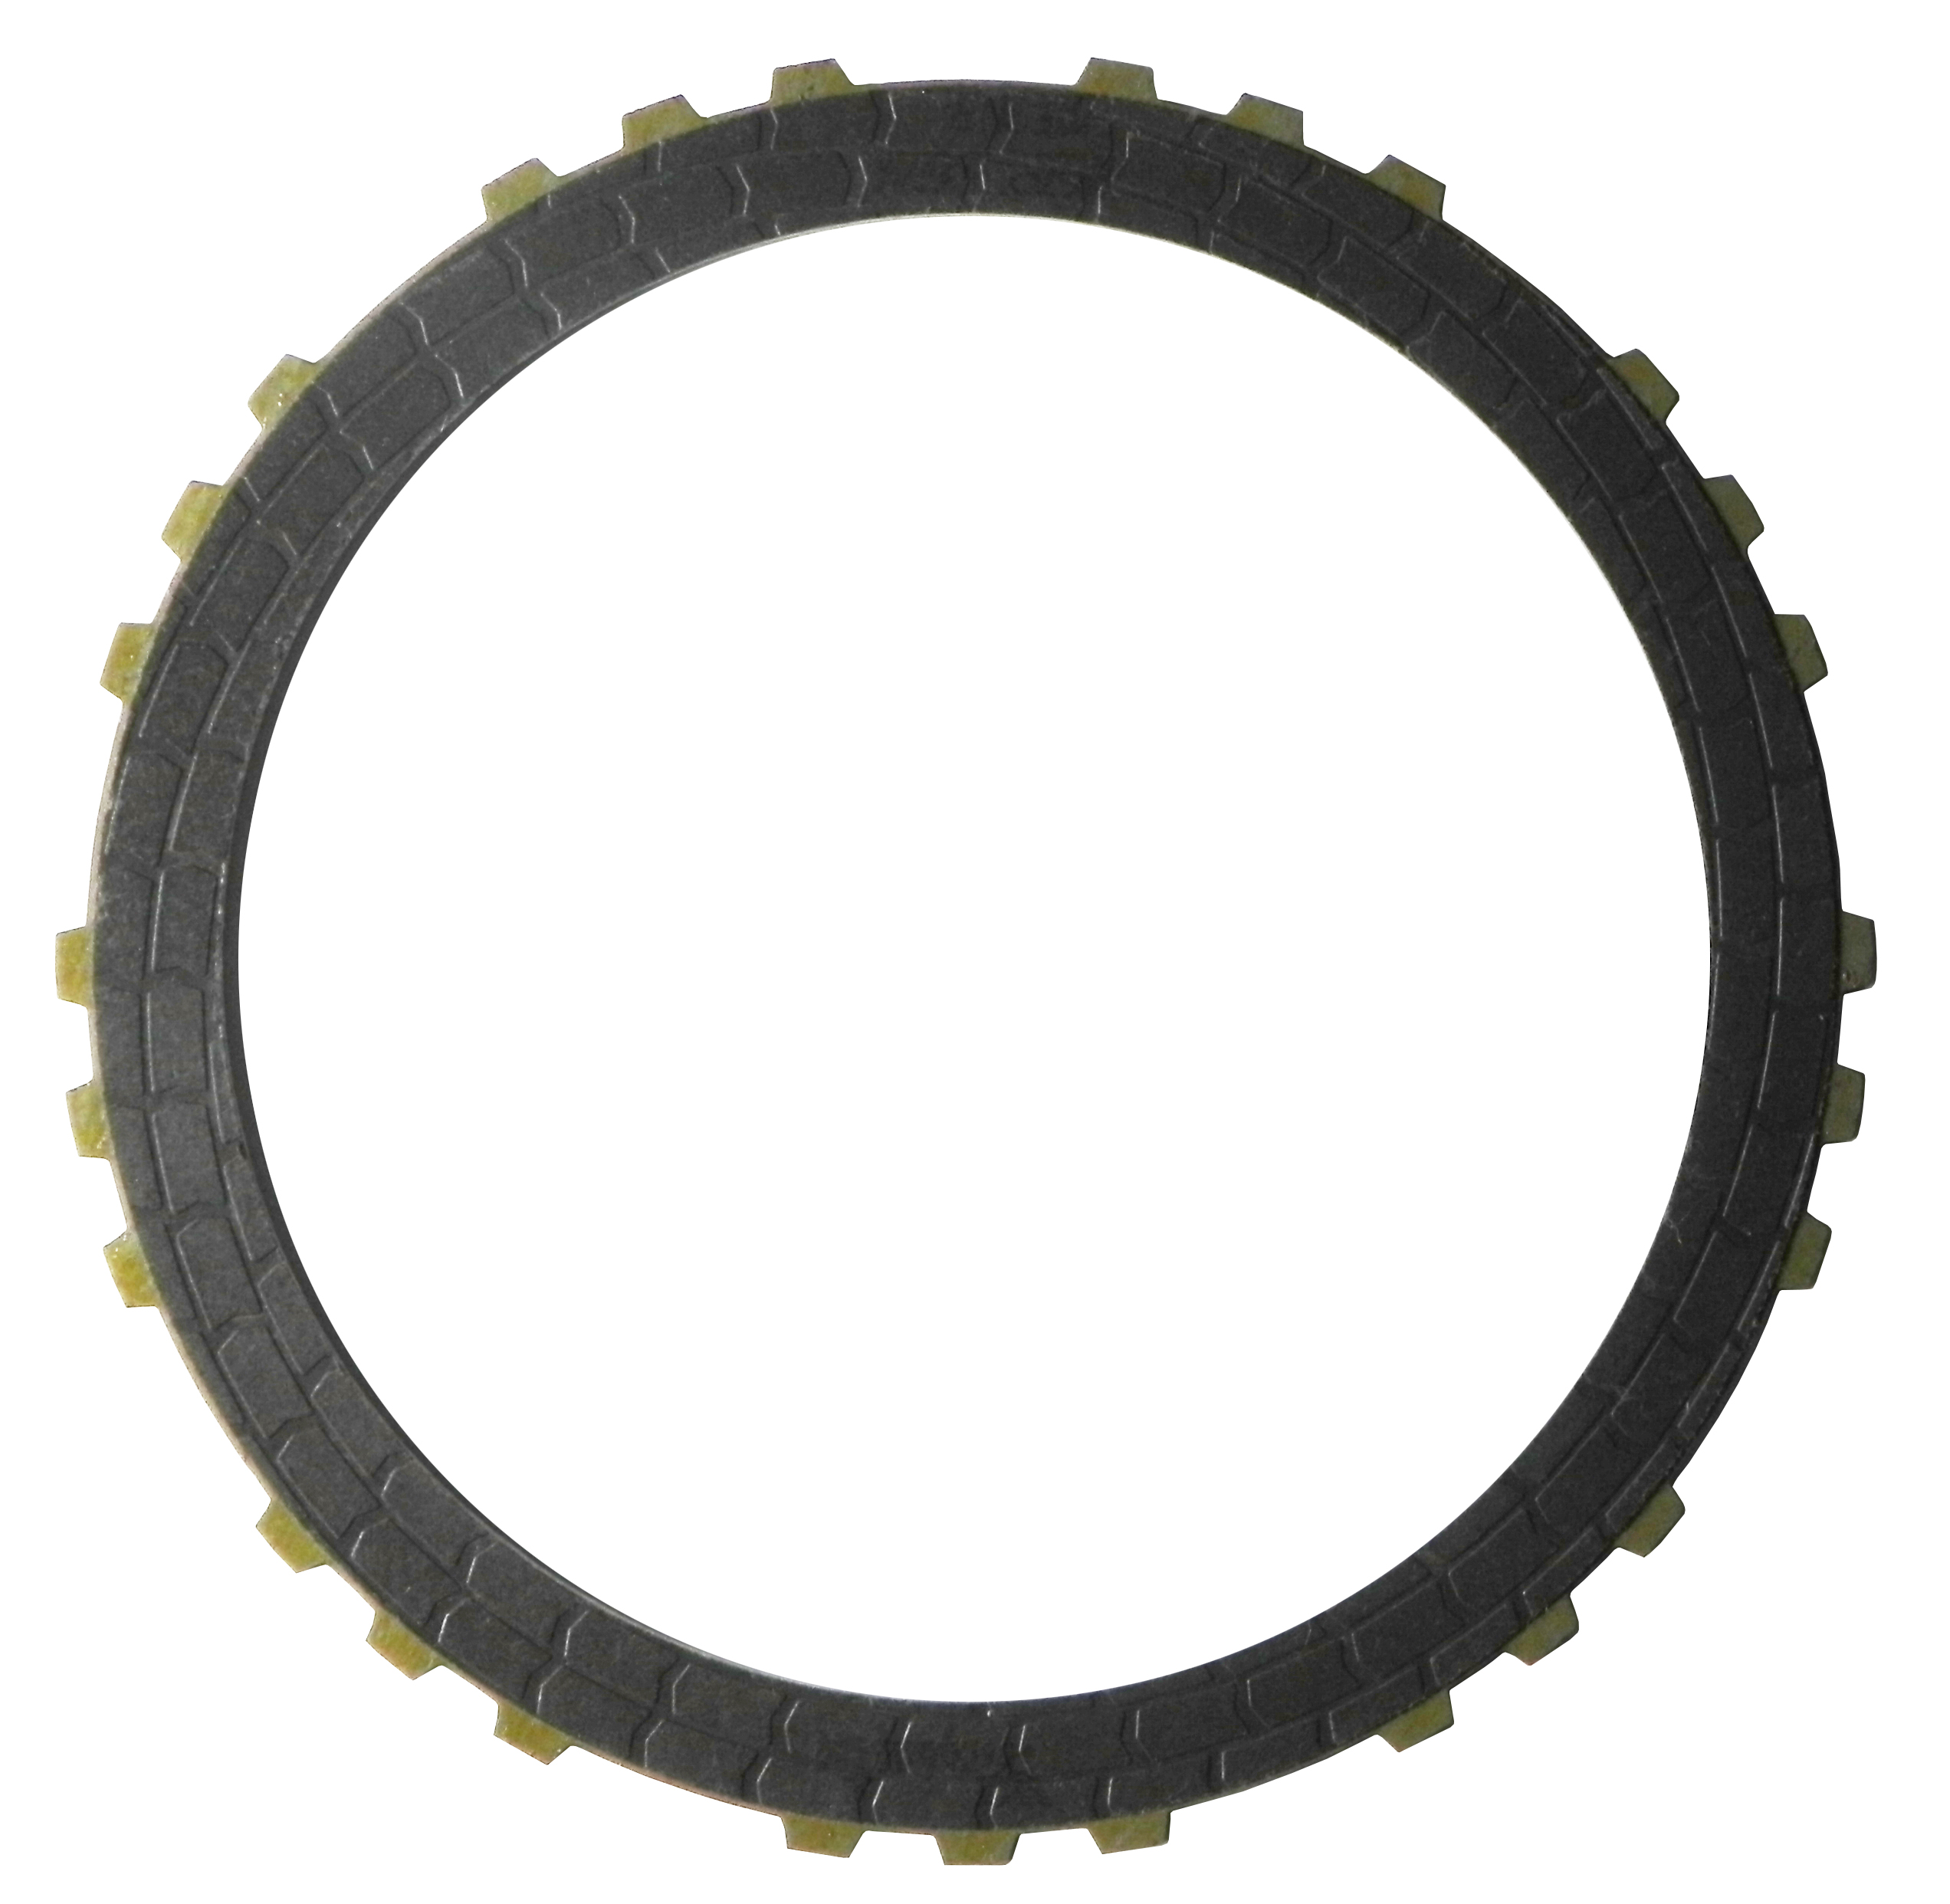 "RH560670 | 2009-ON Friction Clutch Plate (HT) Hybrid Technology 3, 5, Reverse Single Sided, (.090"") OD Spline Proprietary High Energy (HT)"